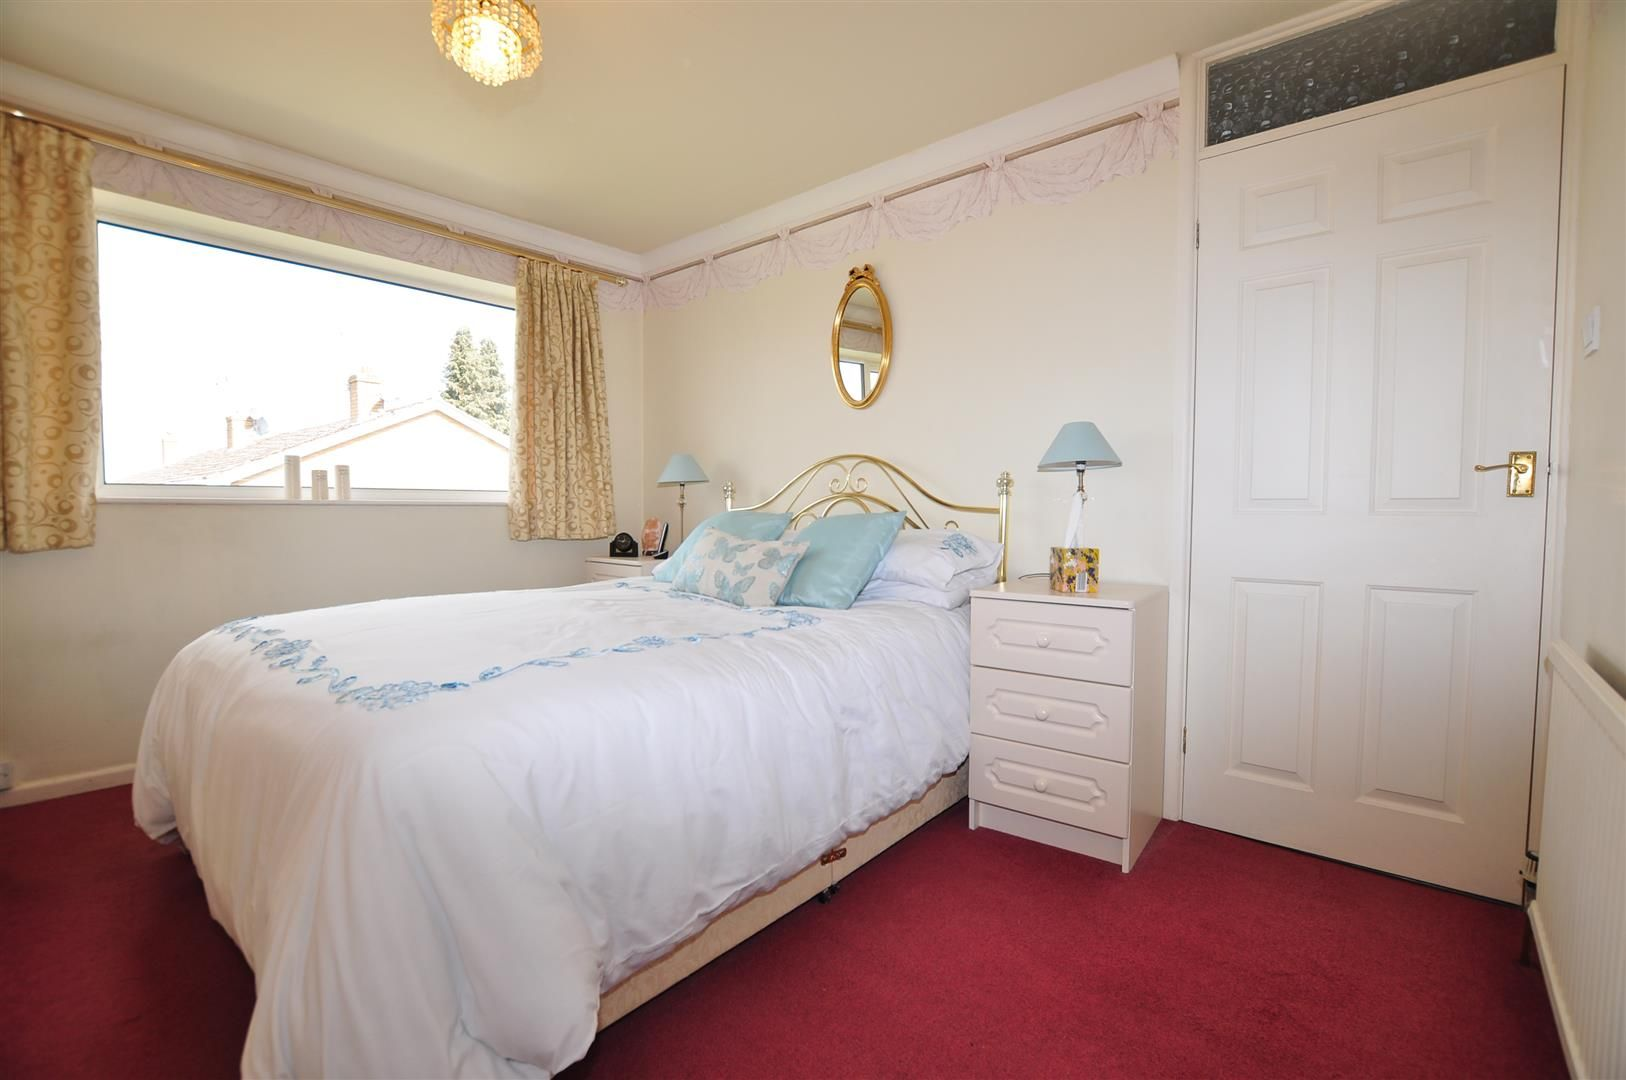 3 bed house for sale in Hagley 10